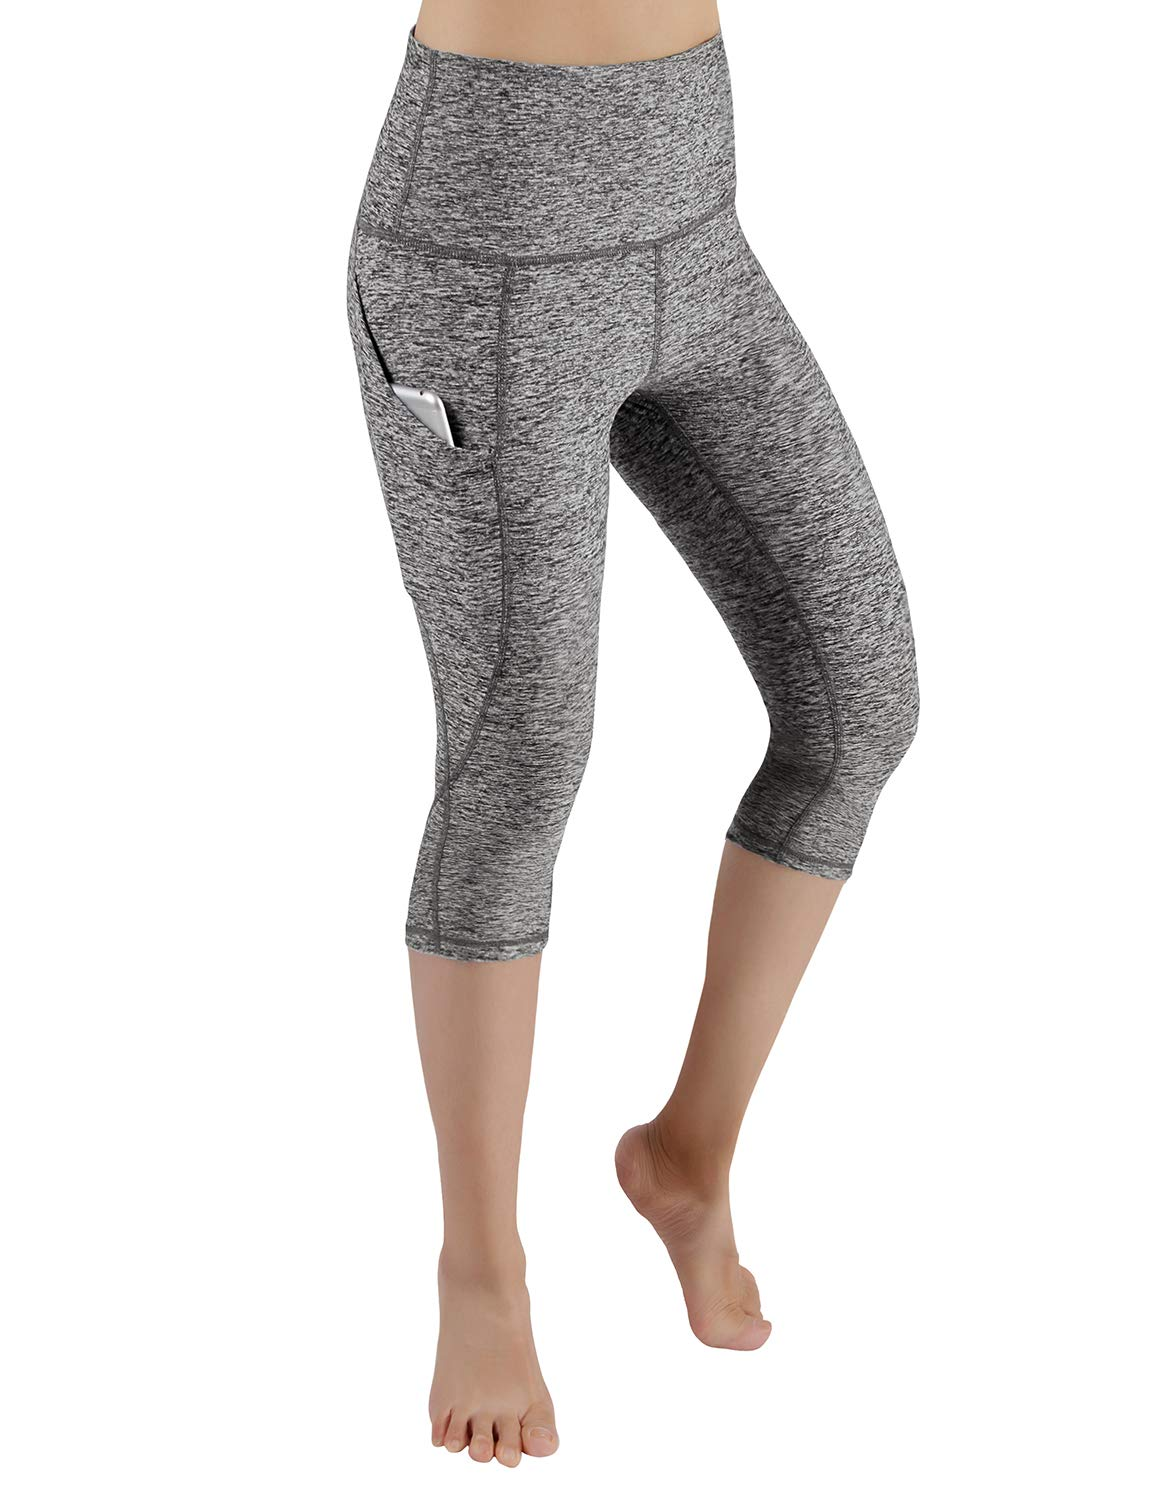 ODODOS High Waist Out Pocket Yoga Capris Pants Tummy Control Workout Running 4 Way Stretch Yoga Leggings,GrayHeather,X-Small by ODODOS (Image #2)